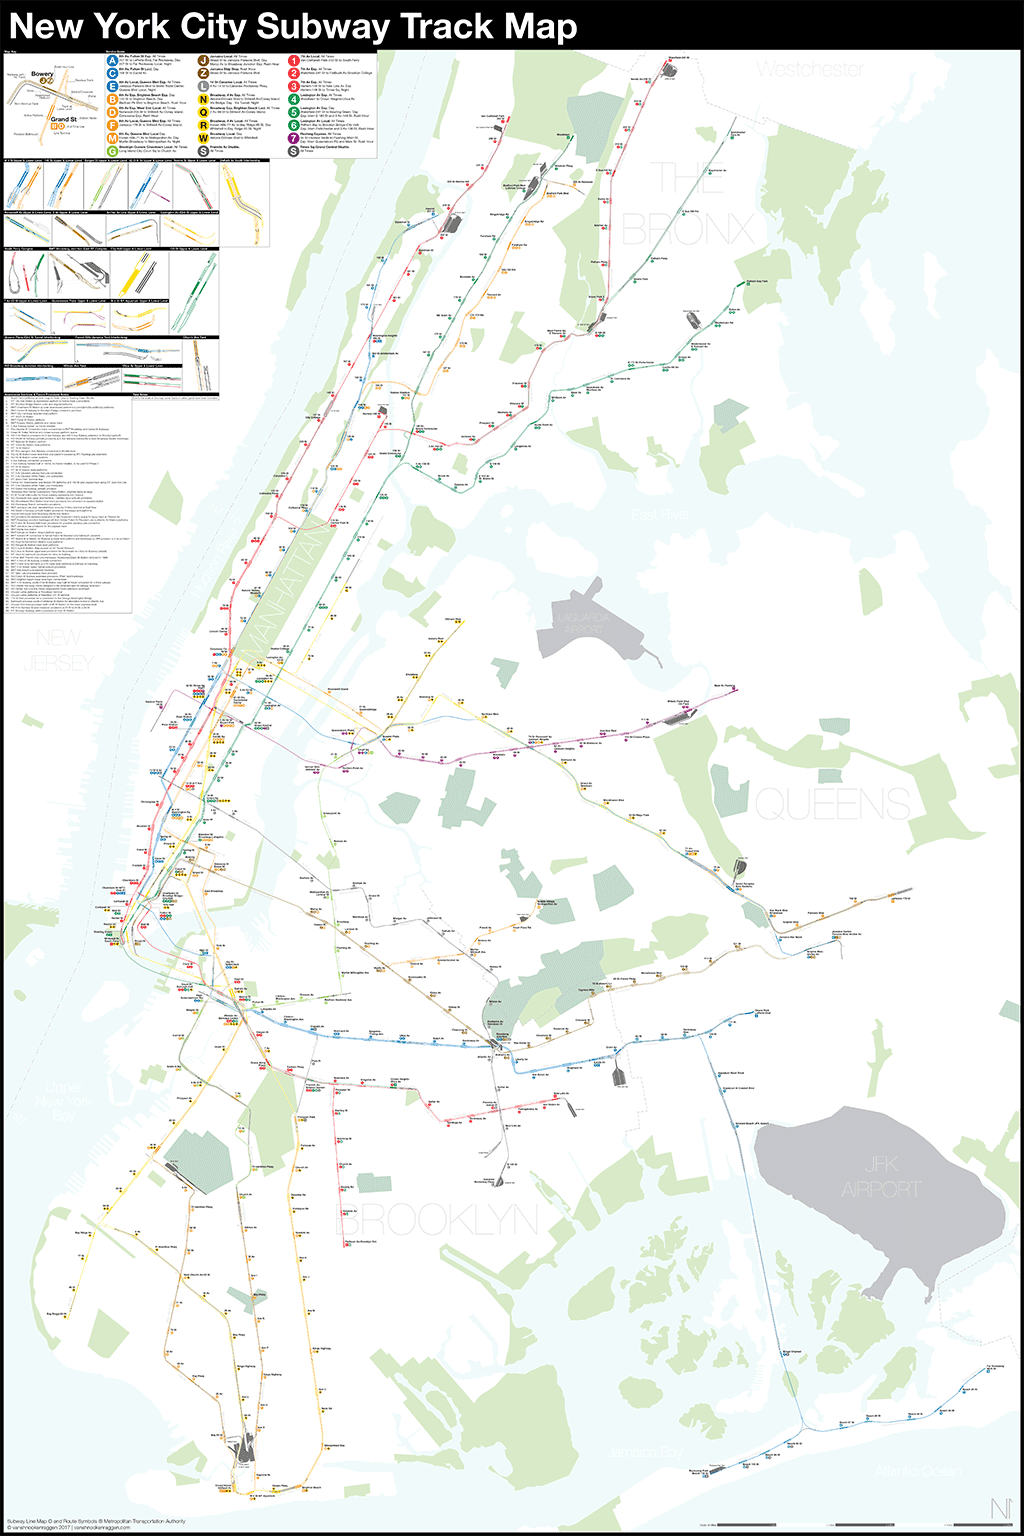 a complete and geographically accurate nyc subway track map click the image to download the pdf map